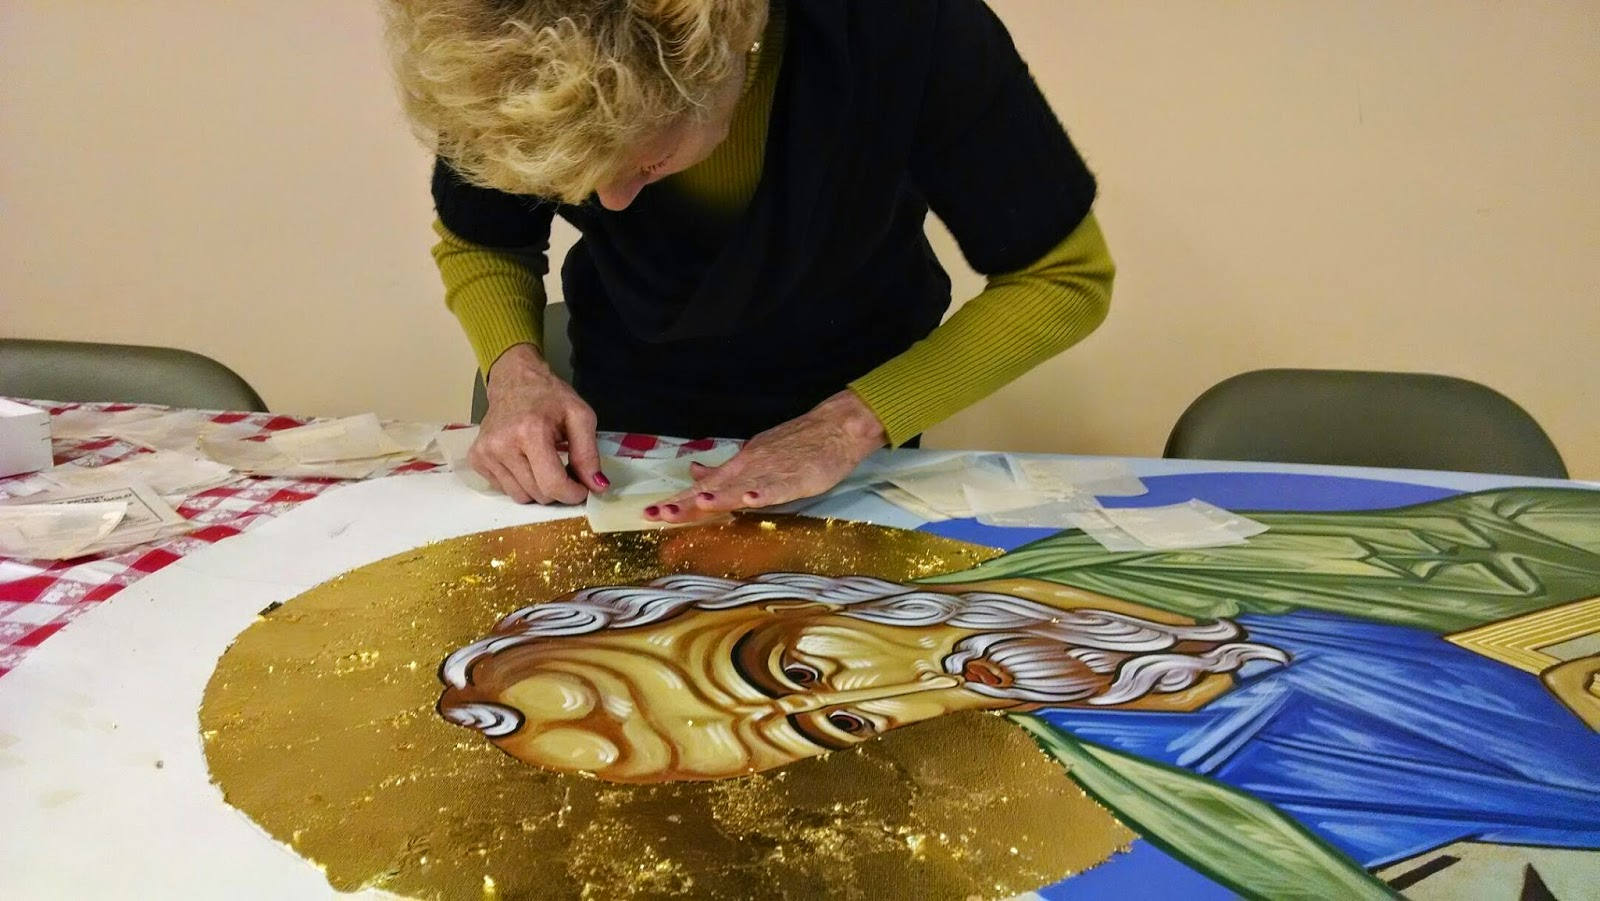 Artist Paints Like Iconography